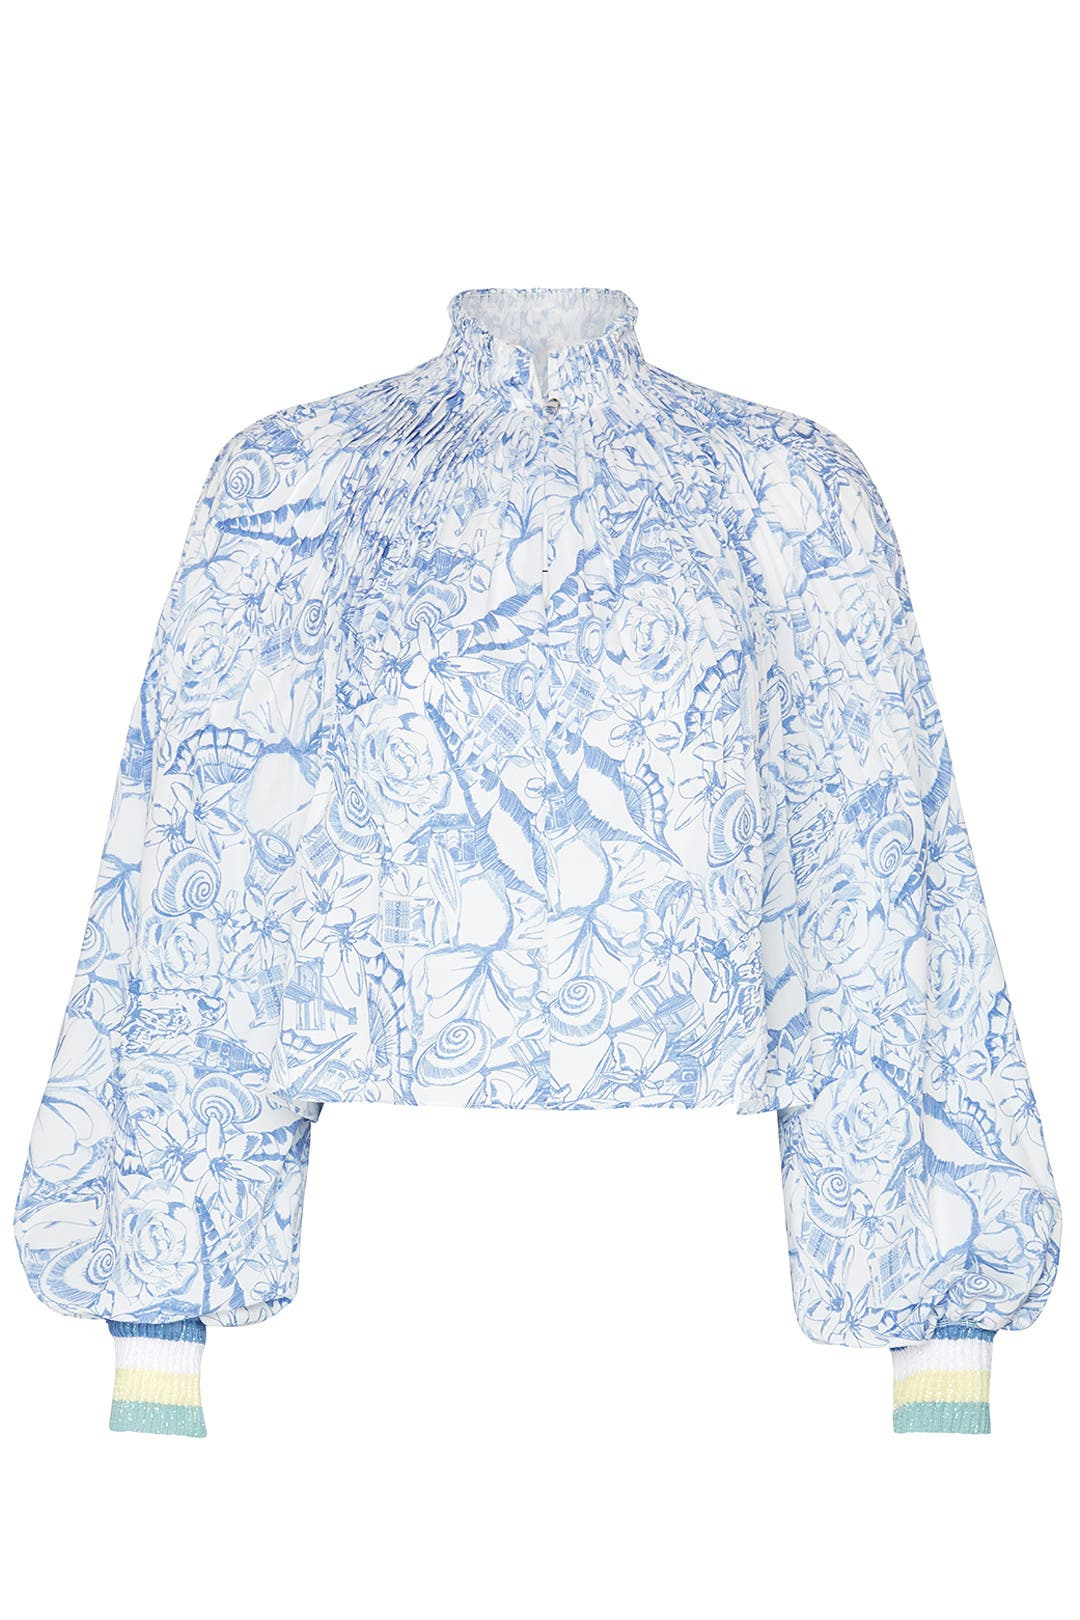 ff10fdf59c0a79 Tibi. Read Reviews. Isa Toile Cropped Edwardian Top